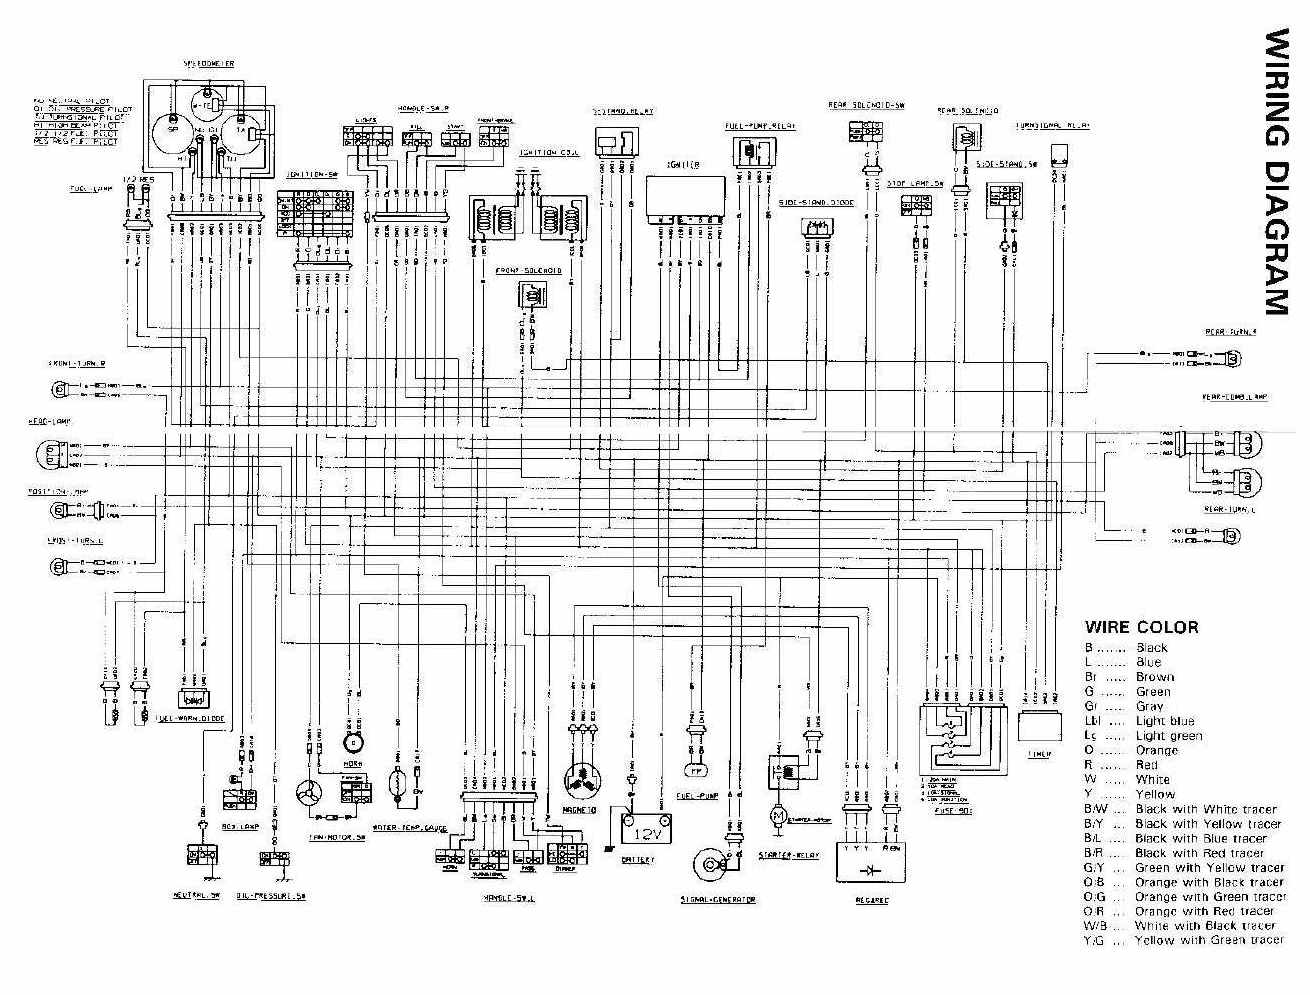 2001 suzuki intruder wiring diagram